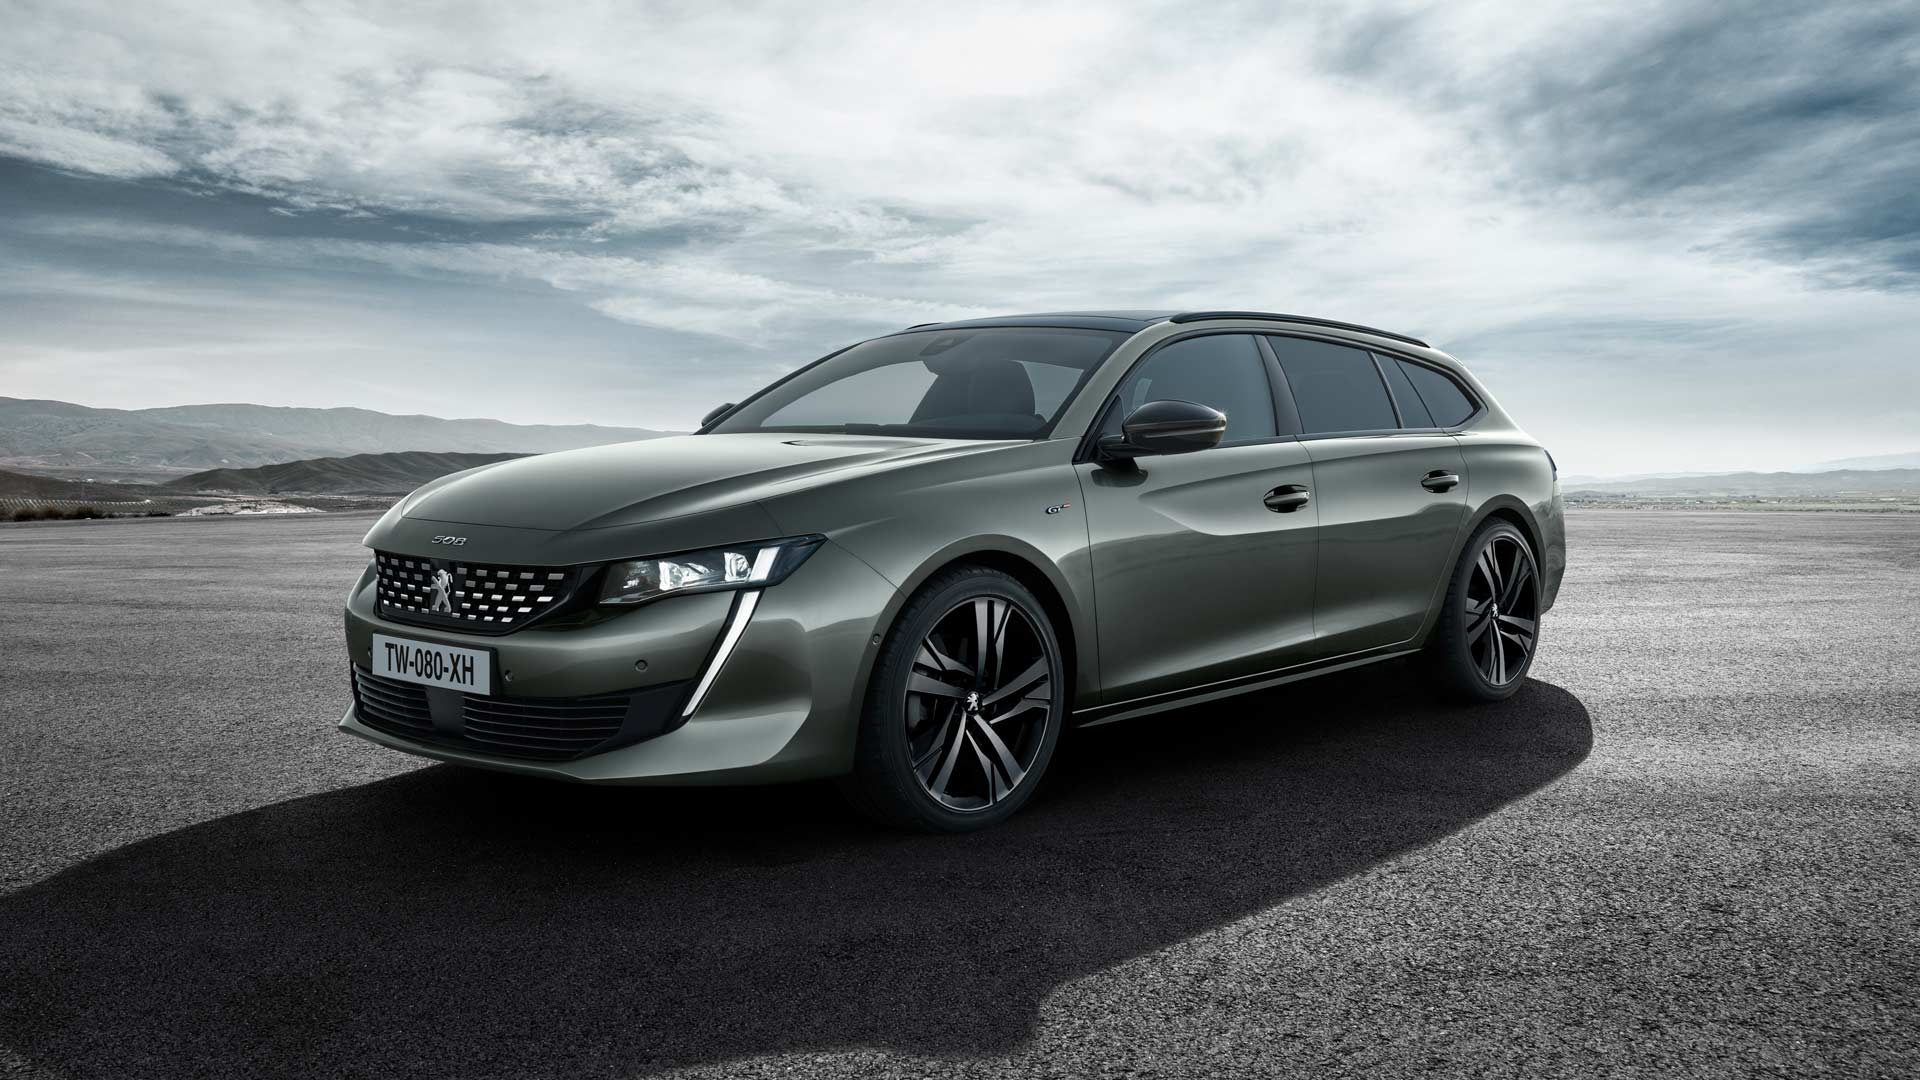 peugeot 508 sw first edition adds more style tech autodevot. Black Bedroom Furniture Sets. Home Design Ideas